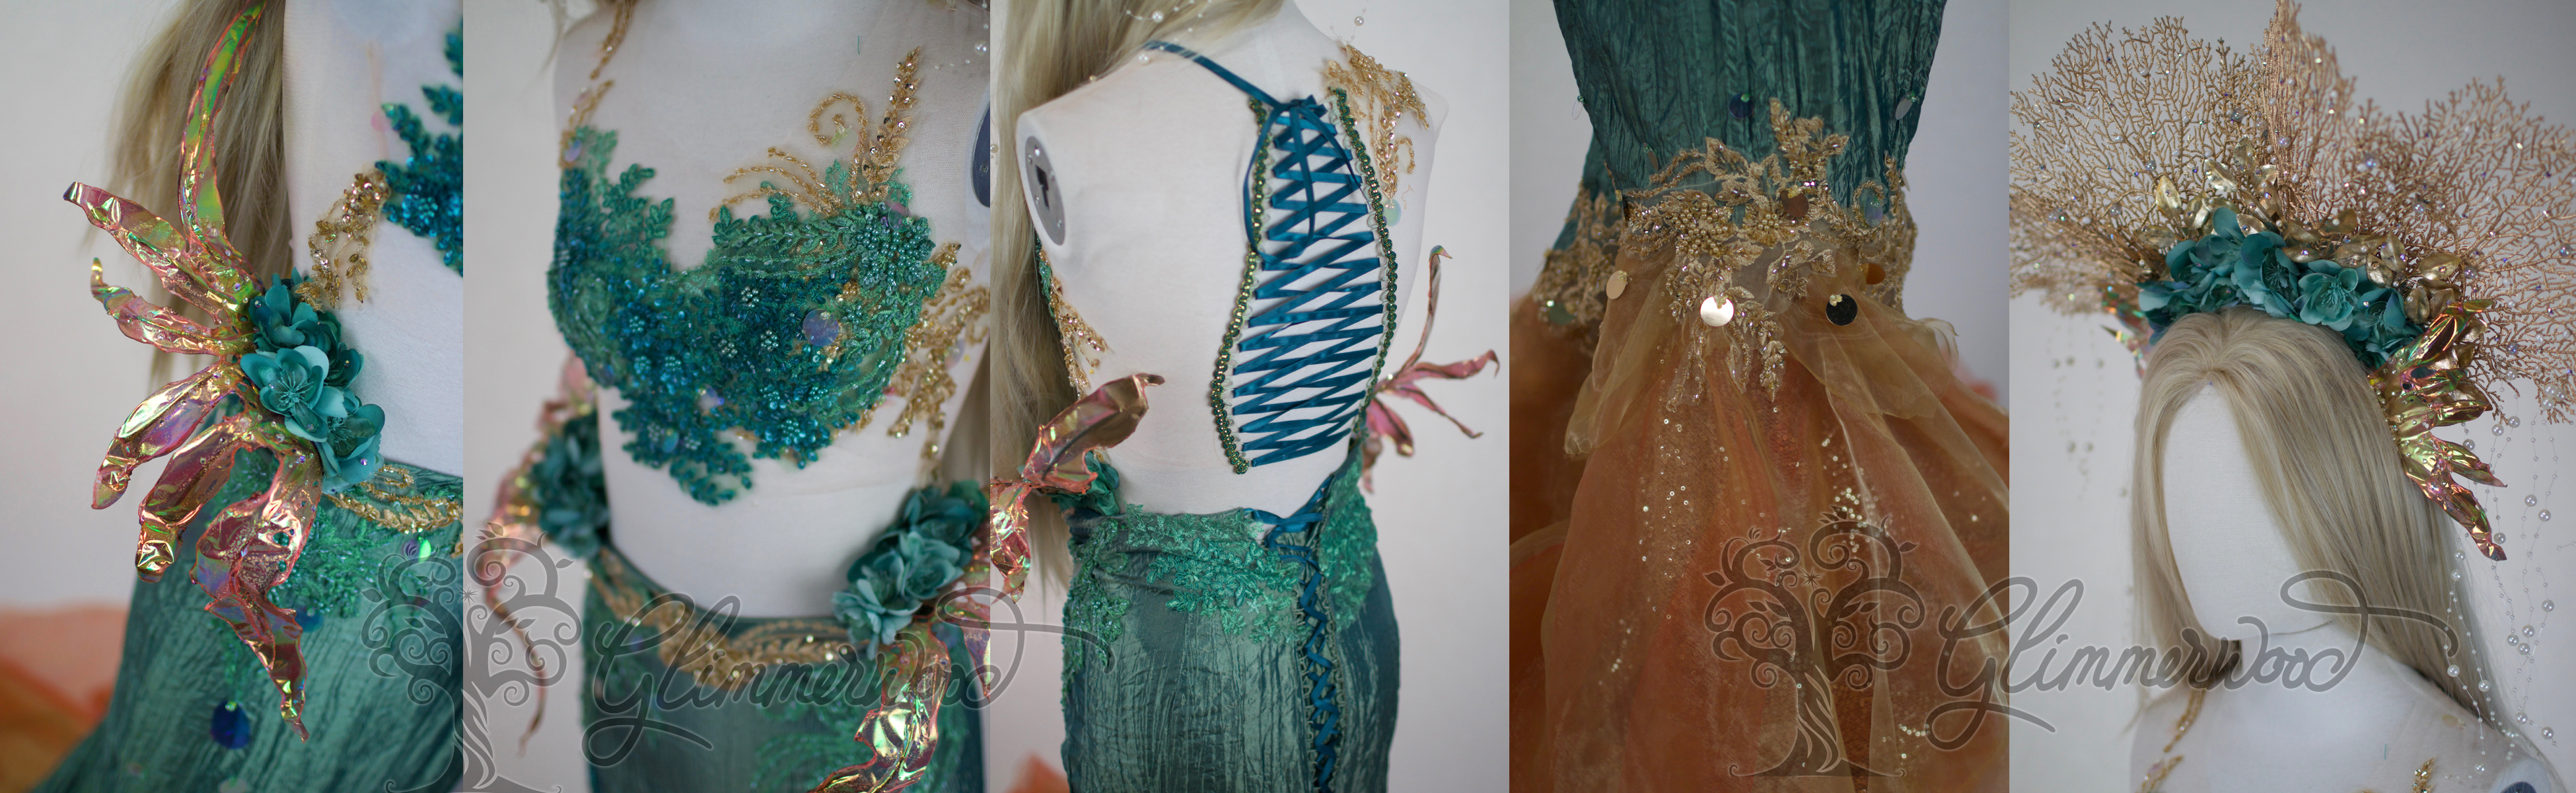 Mermaid Morganna Details